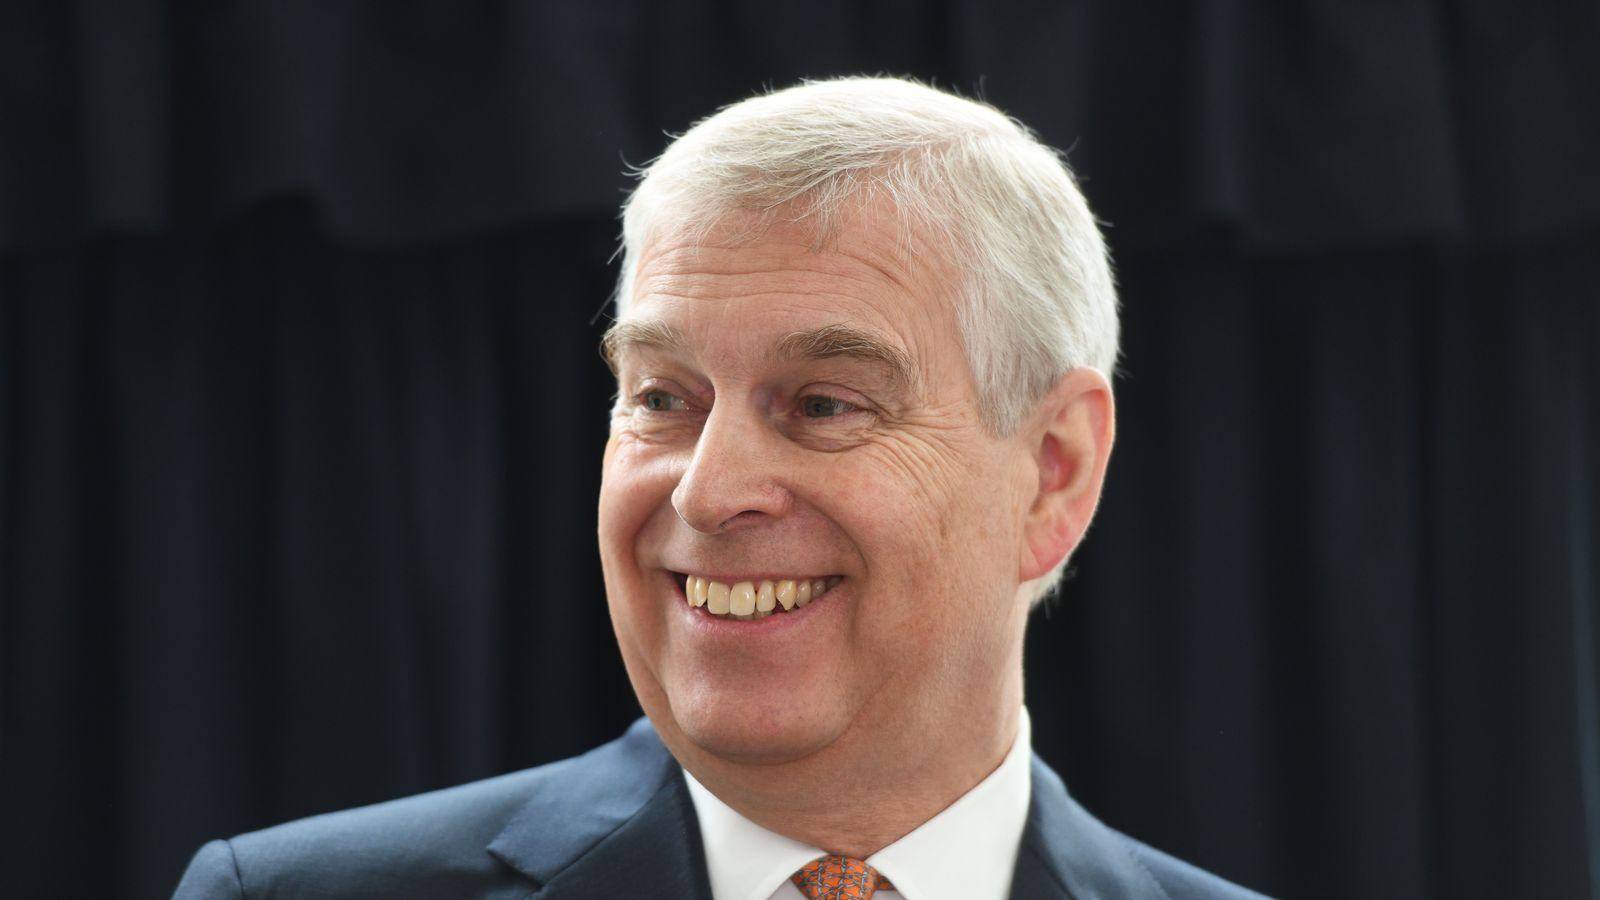 Bells to ring for Prince Andrew's 60th birthday despite criticism